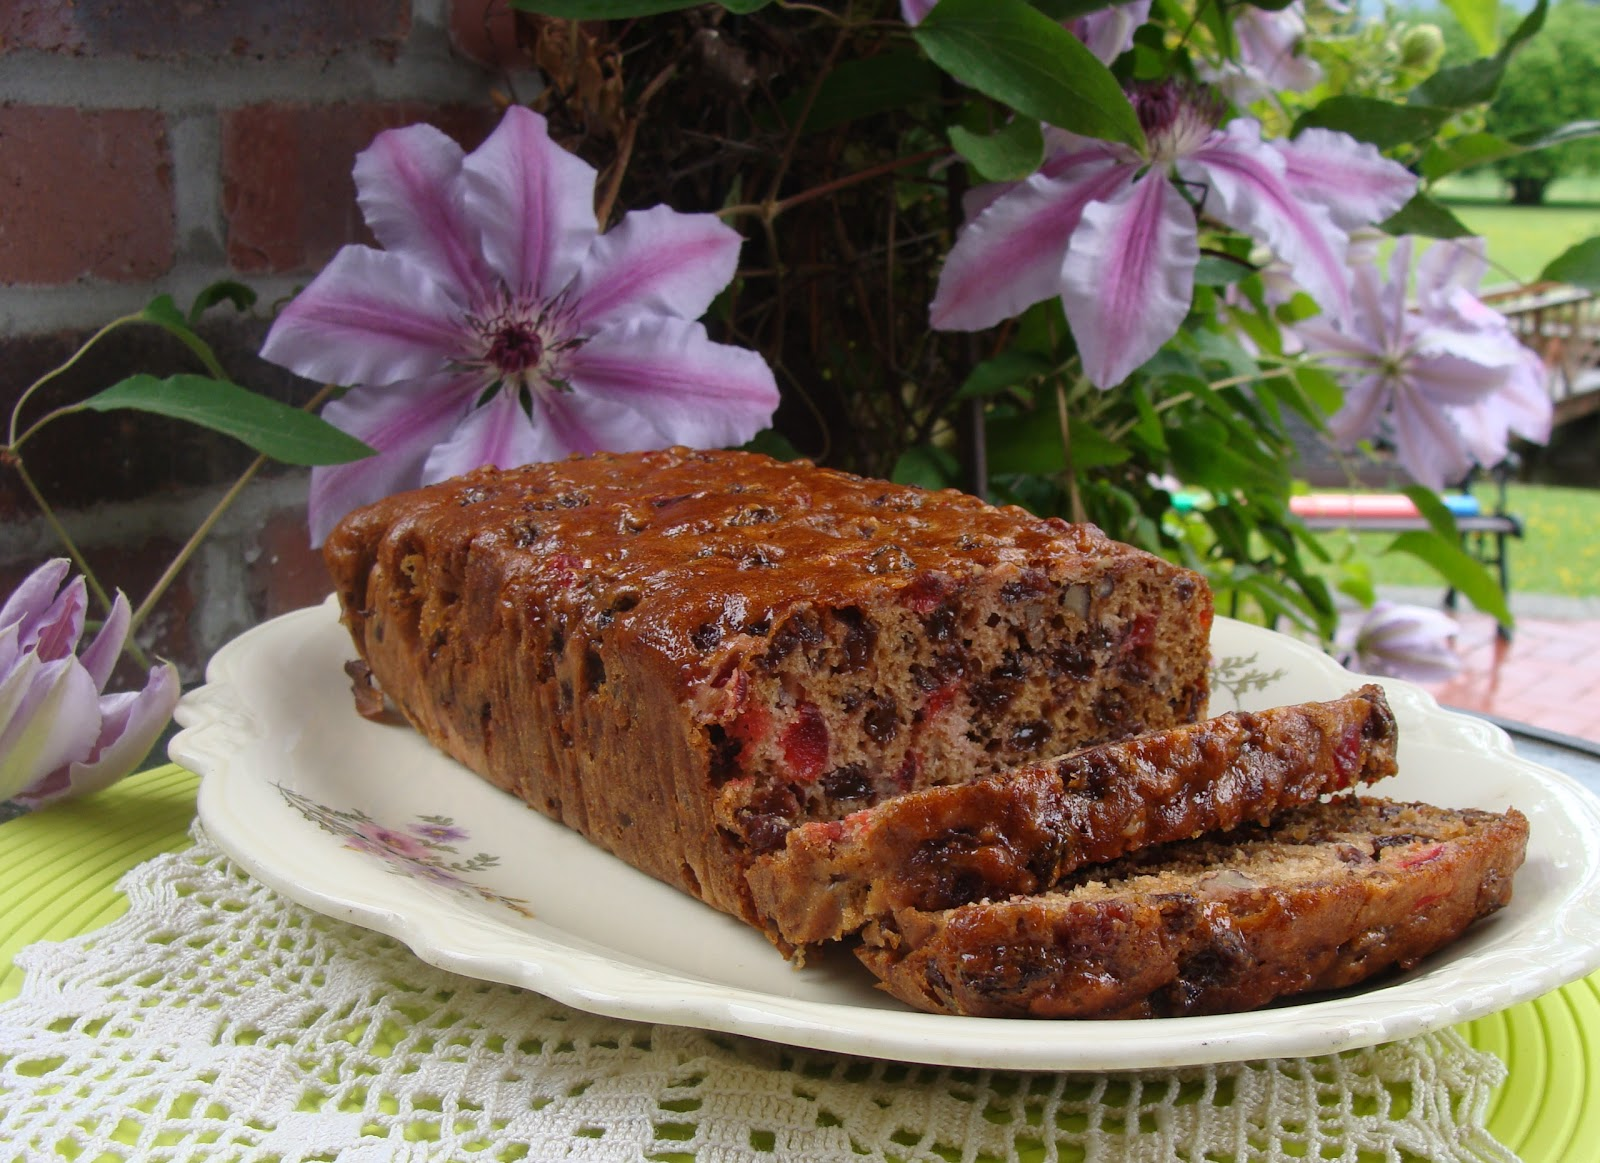 This Fruit Filled Loaf Is Not A Traditional Boston Brown Bread But It S What My Aunt Emmy Called When She Shared The Recipe With Me Years Ago